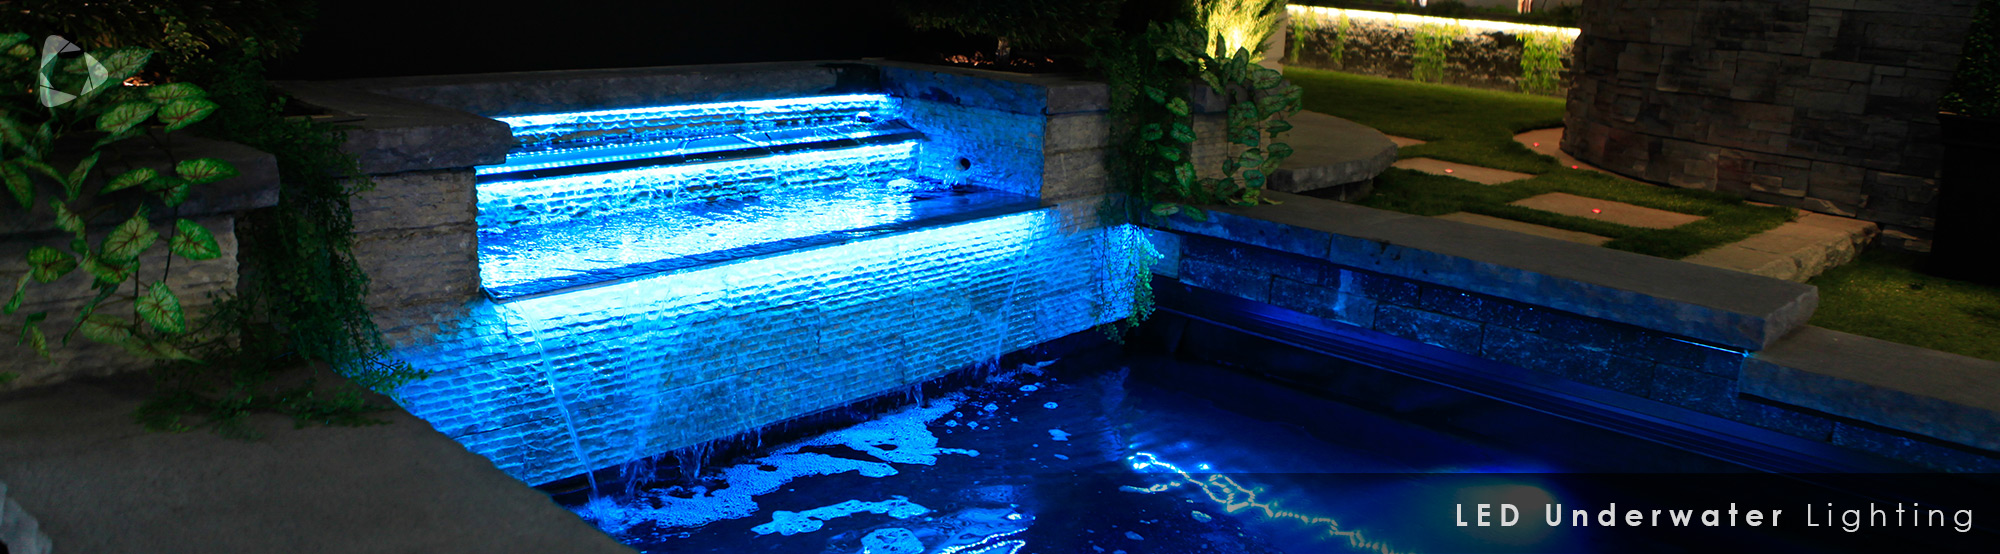 SGi LED Underwater Lighting